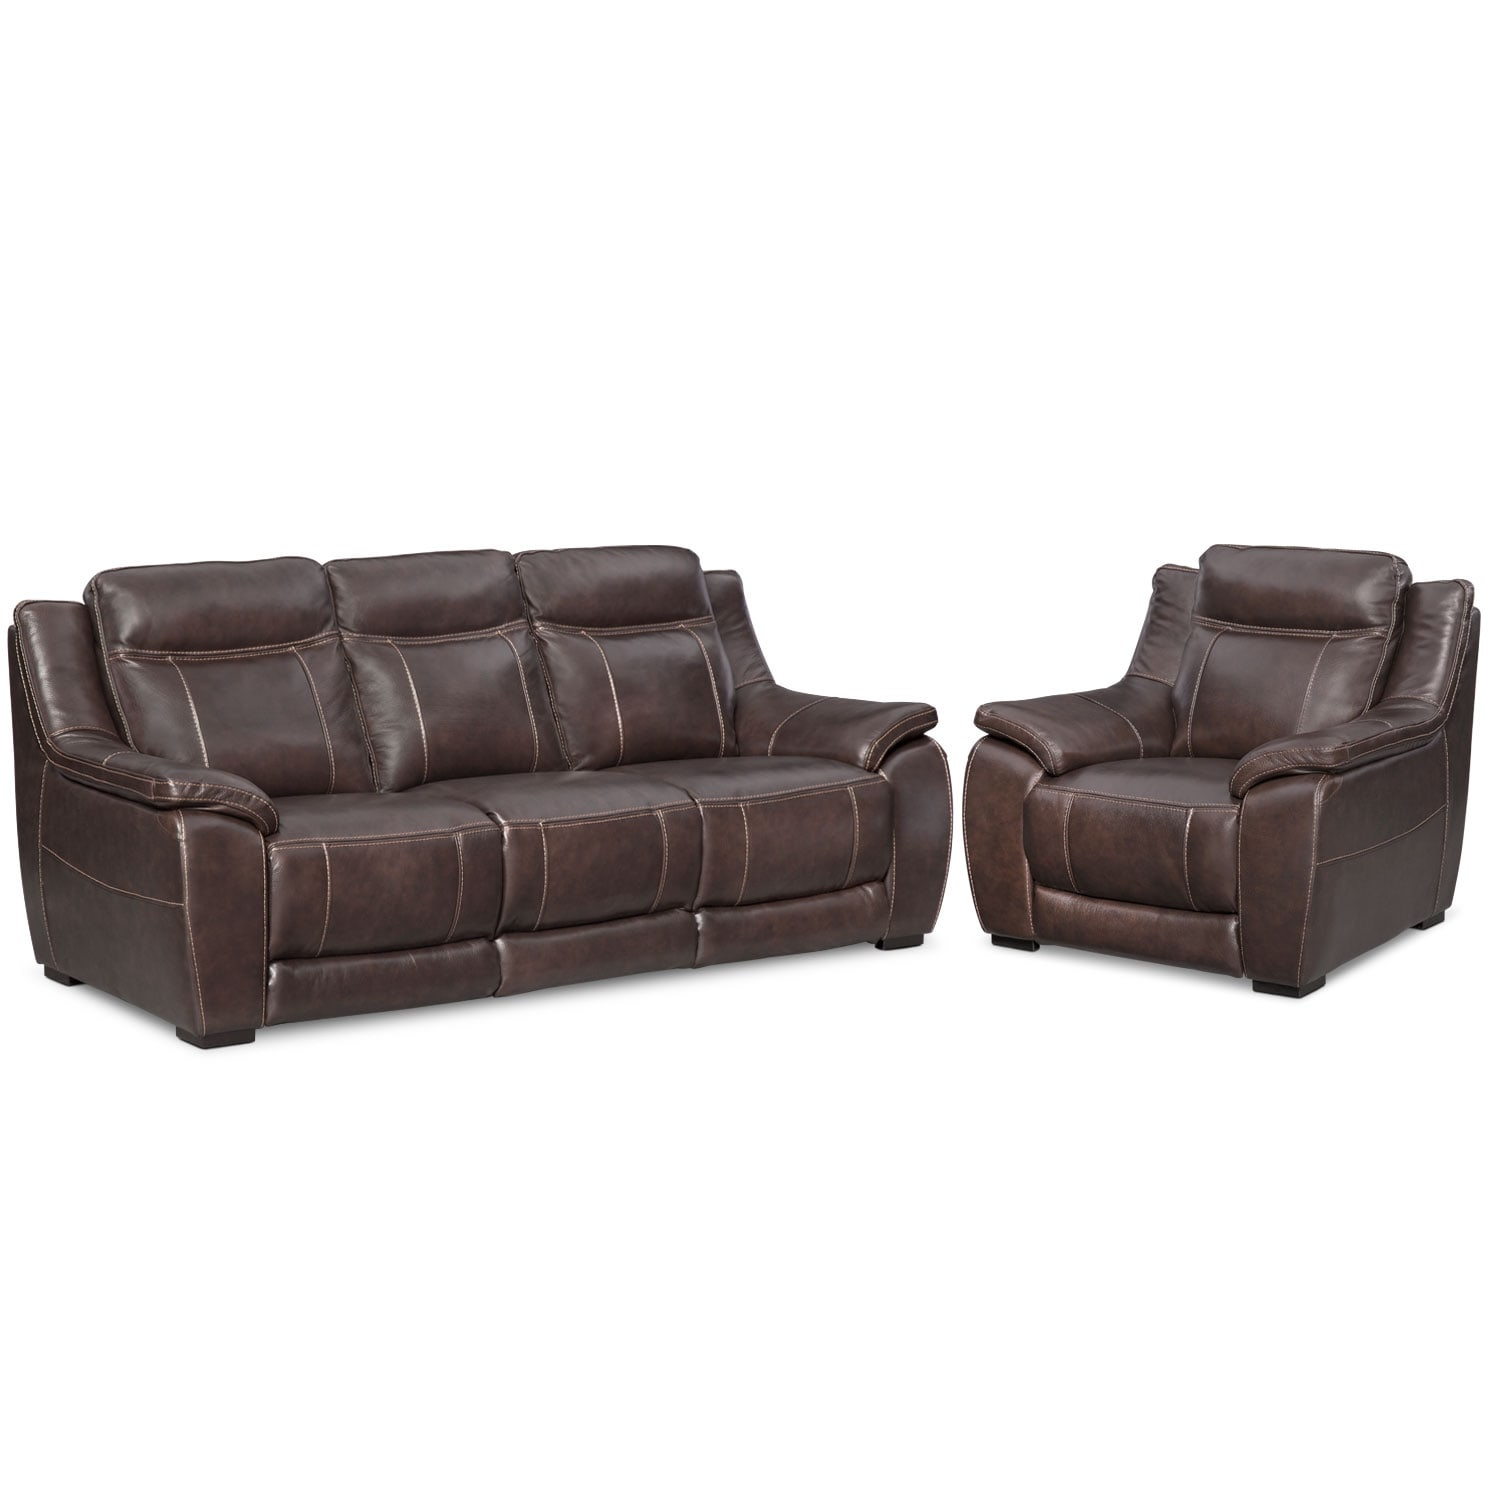 Living Room Furniture - Lido Brown 2 Pc. Living Room w/ Chair